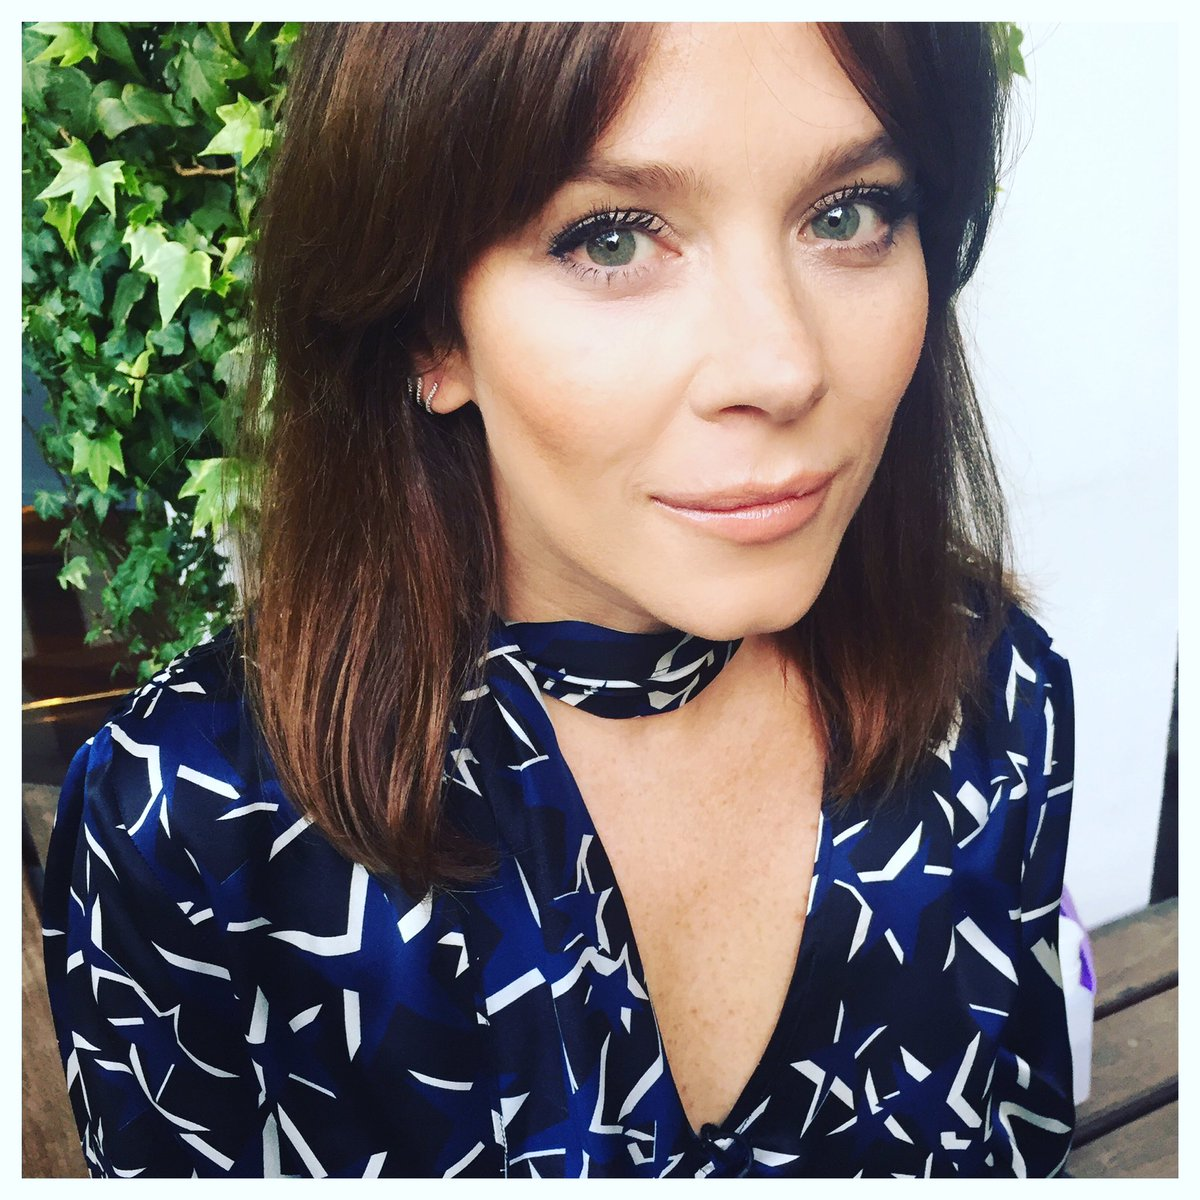 Backstage in the sunshine with the gorgeous @annafriel before @chattyman #annafriel #chattyman #marcella https://t.co/ZIfQMPzQVw